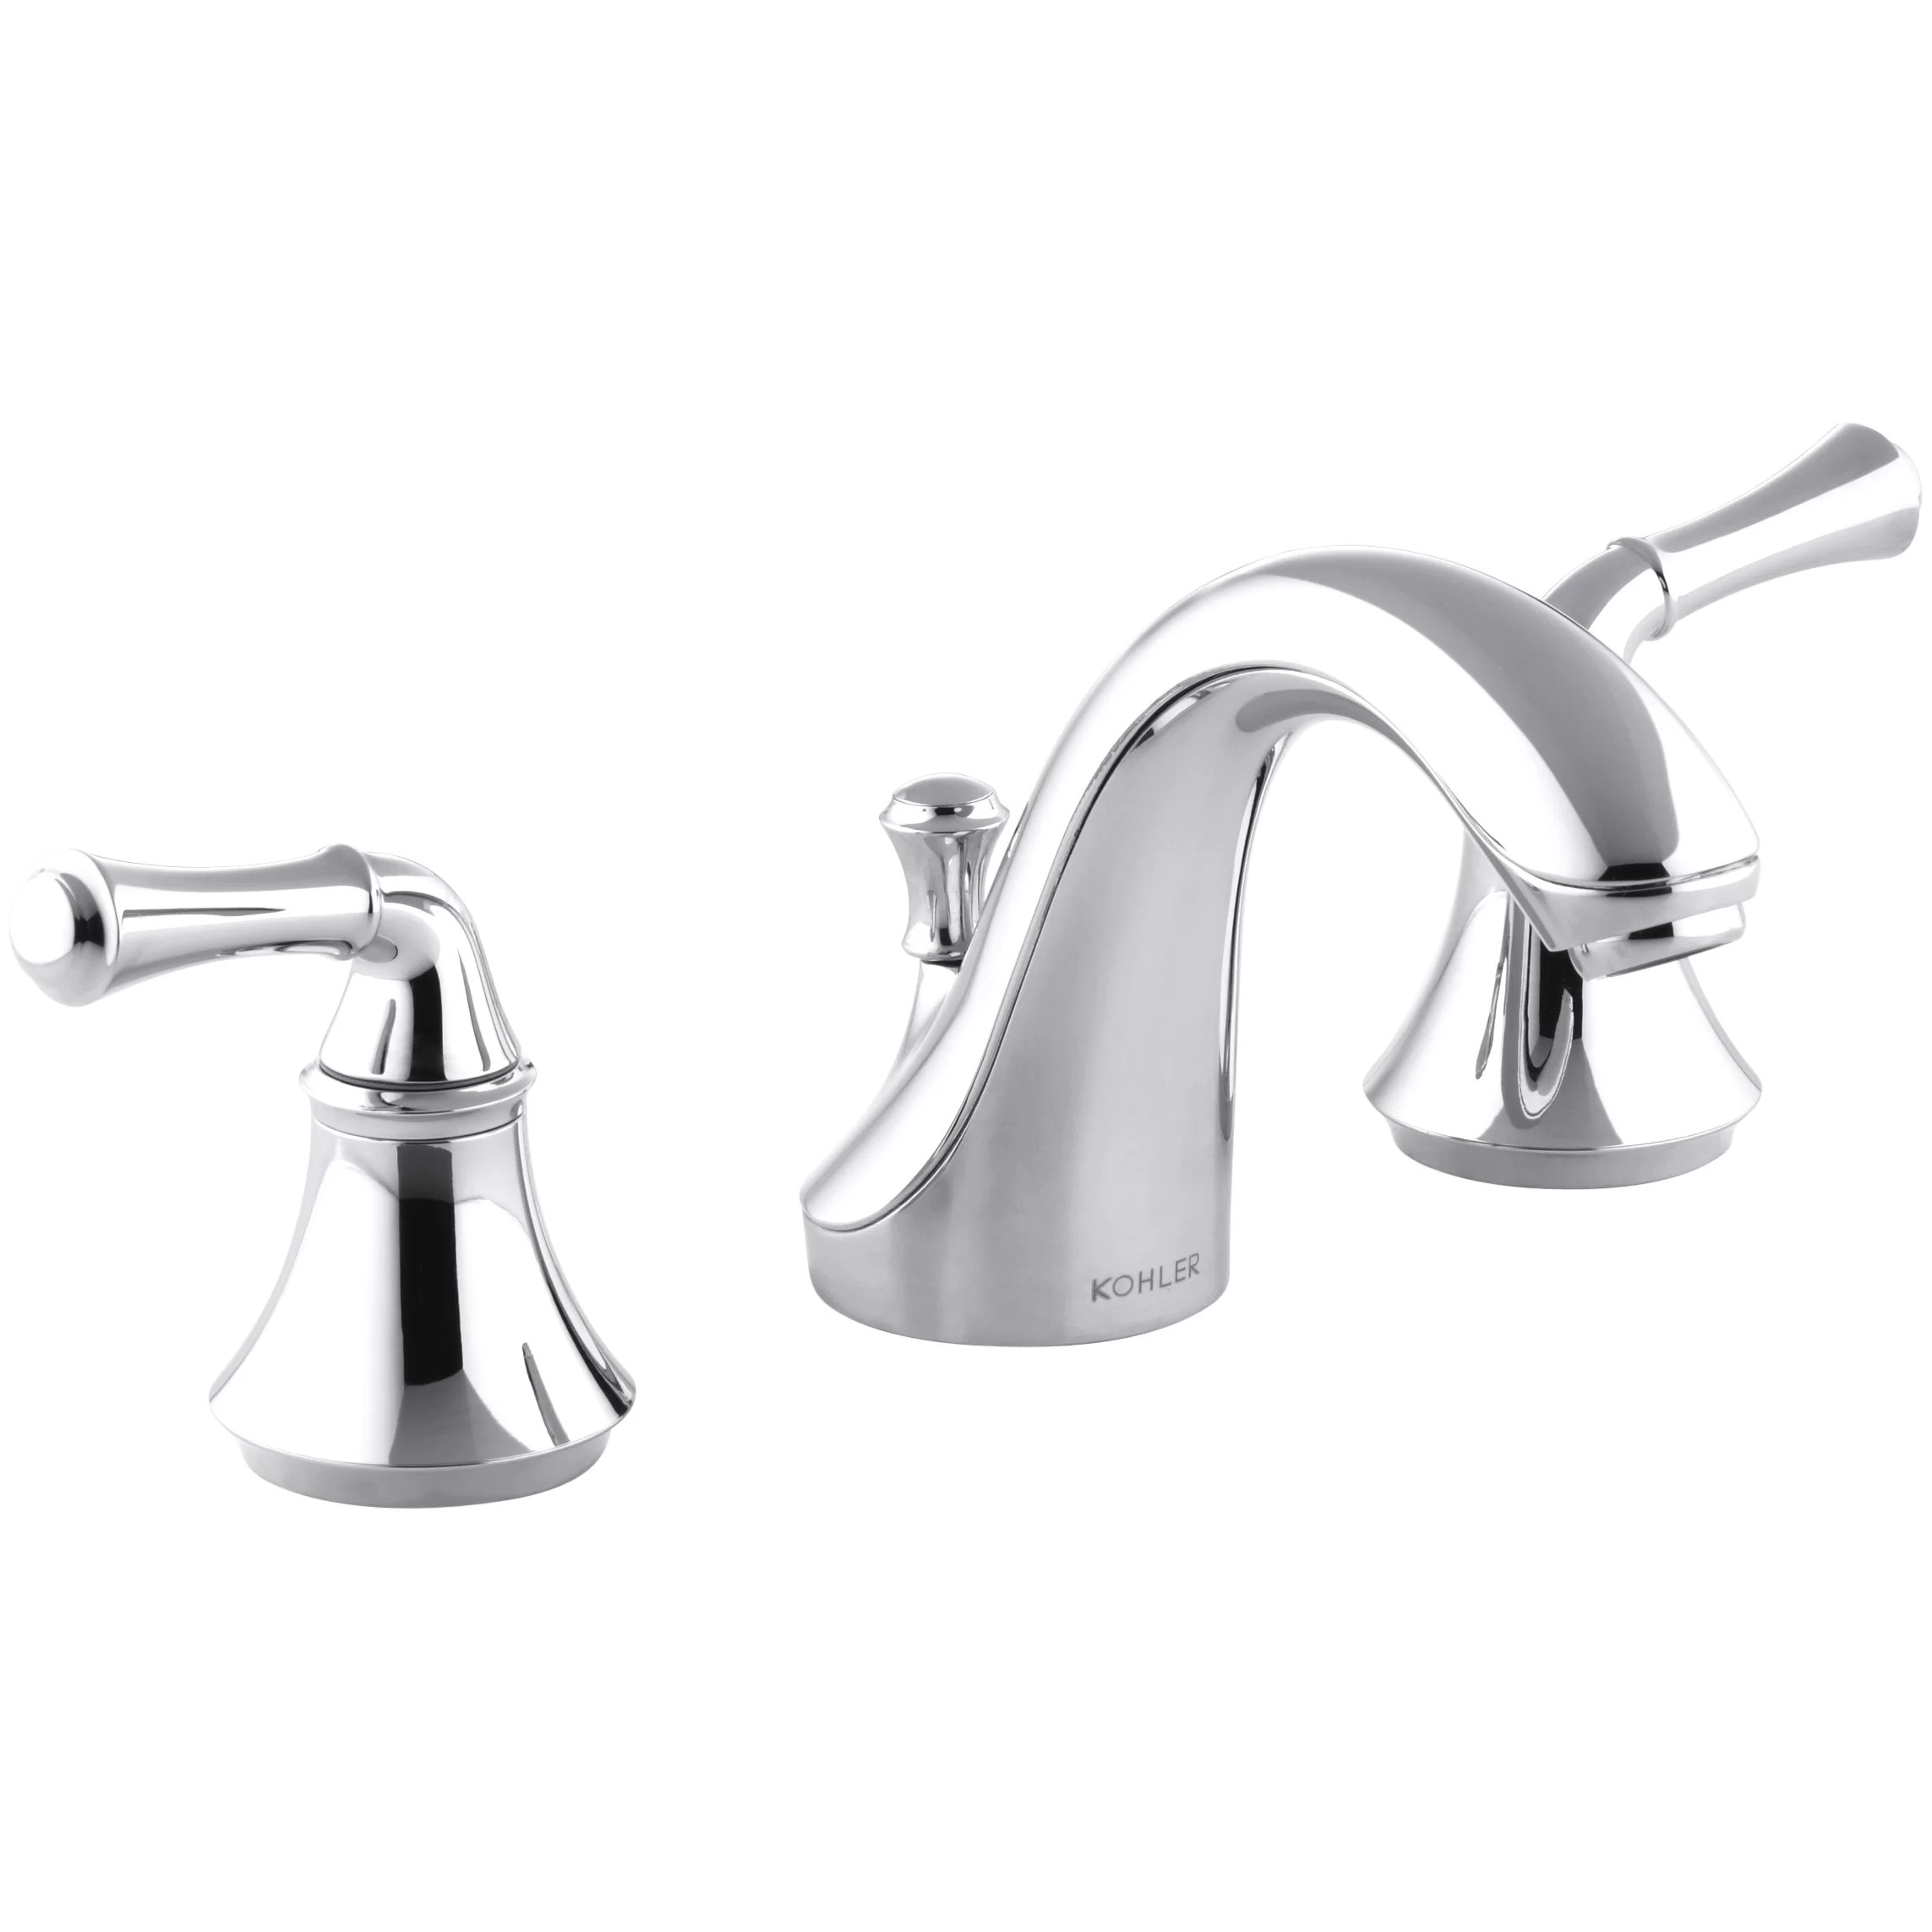 Kohler Fort Widespread Bathroom Sink Faucet with